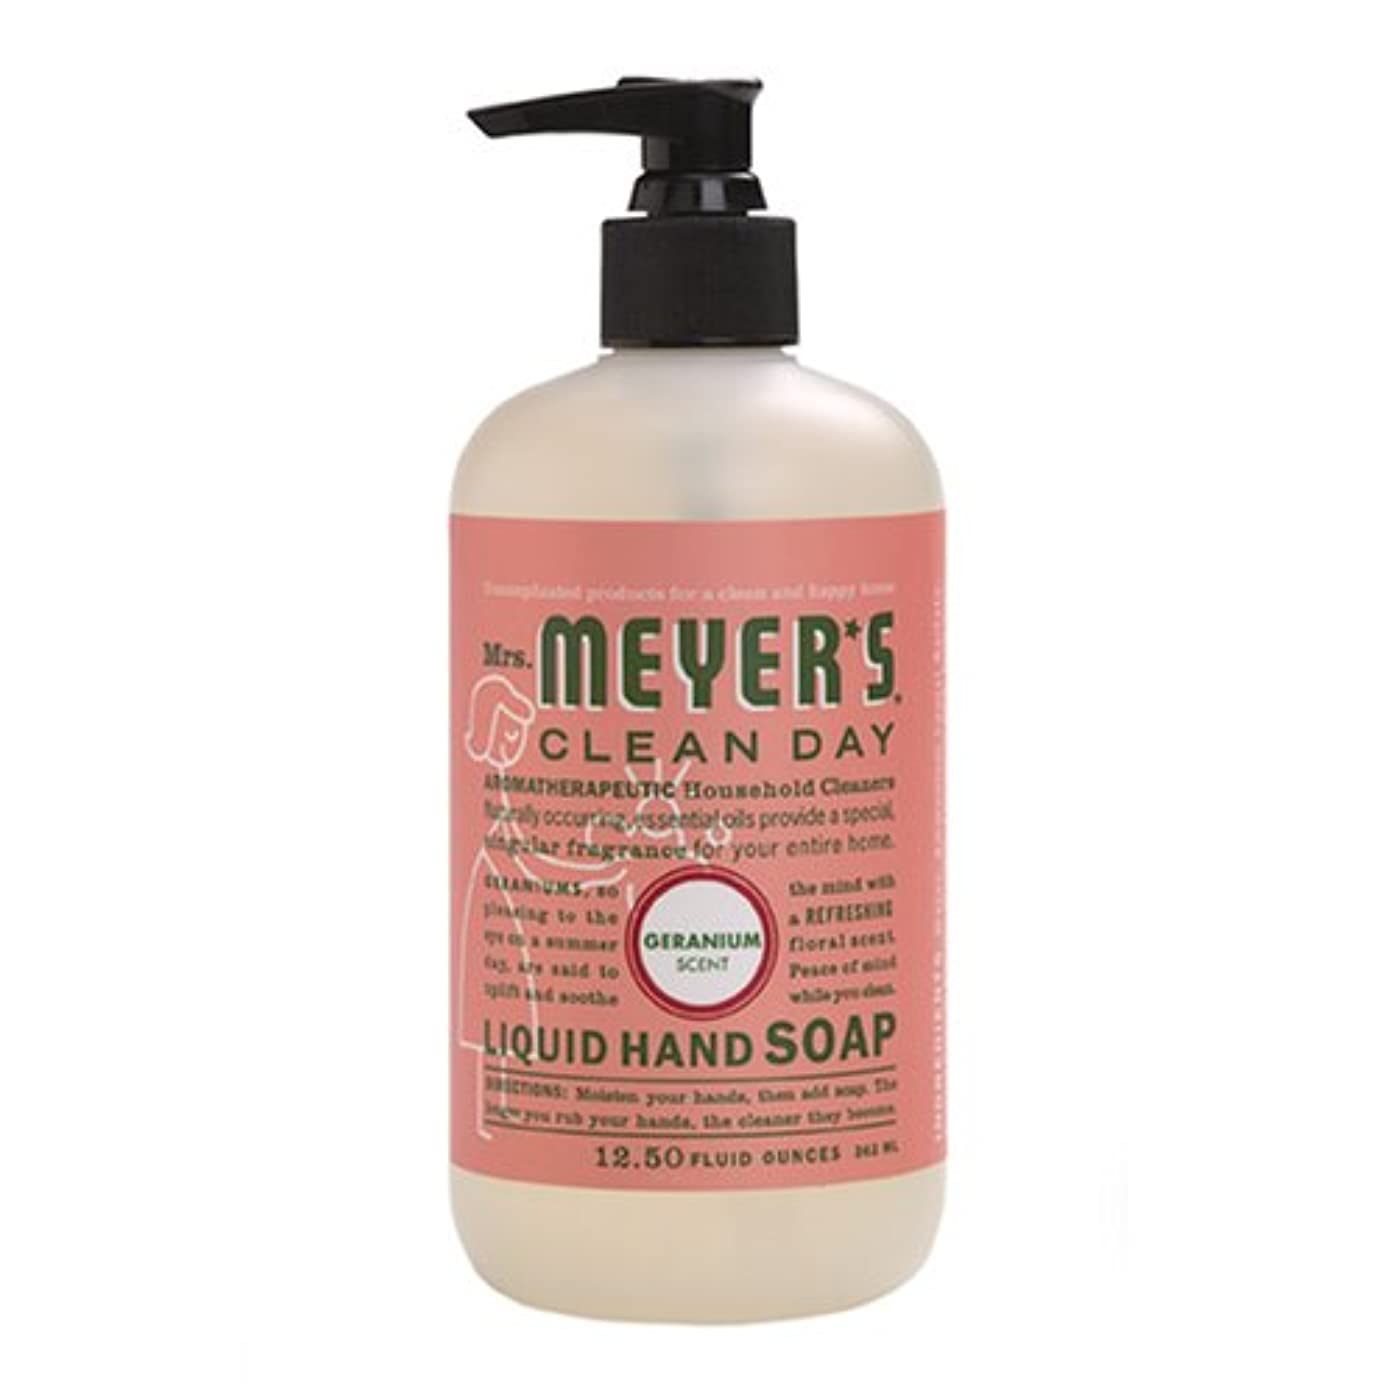 エンジントレースパフMrs. Meyers Clean Day, Liquid Hand Soap, Geranium Scent, 12.5 fl oz (370 ml)